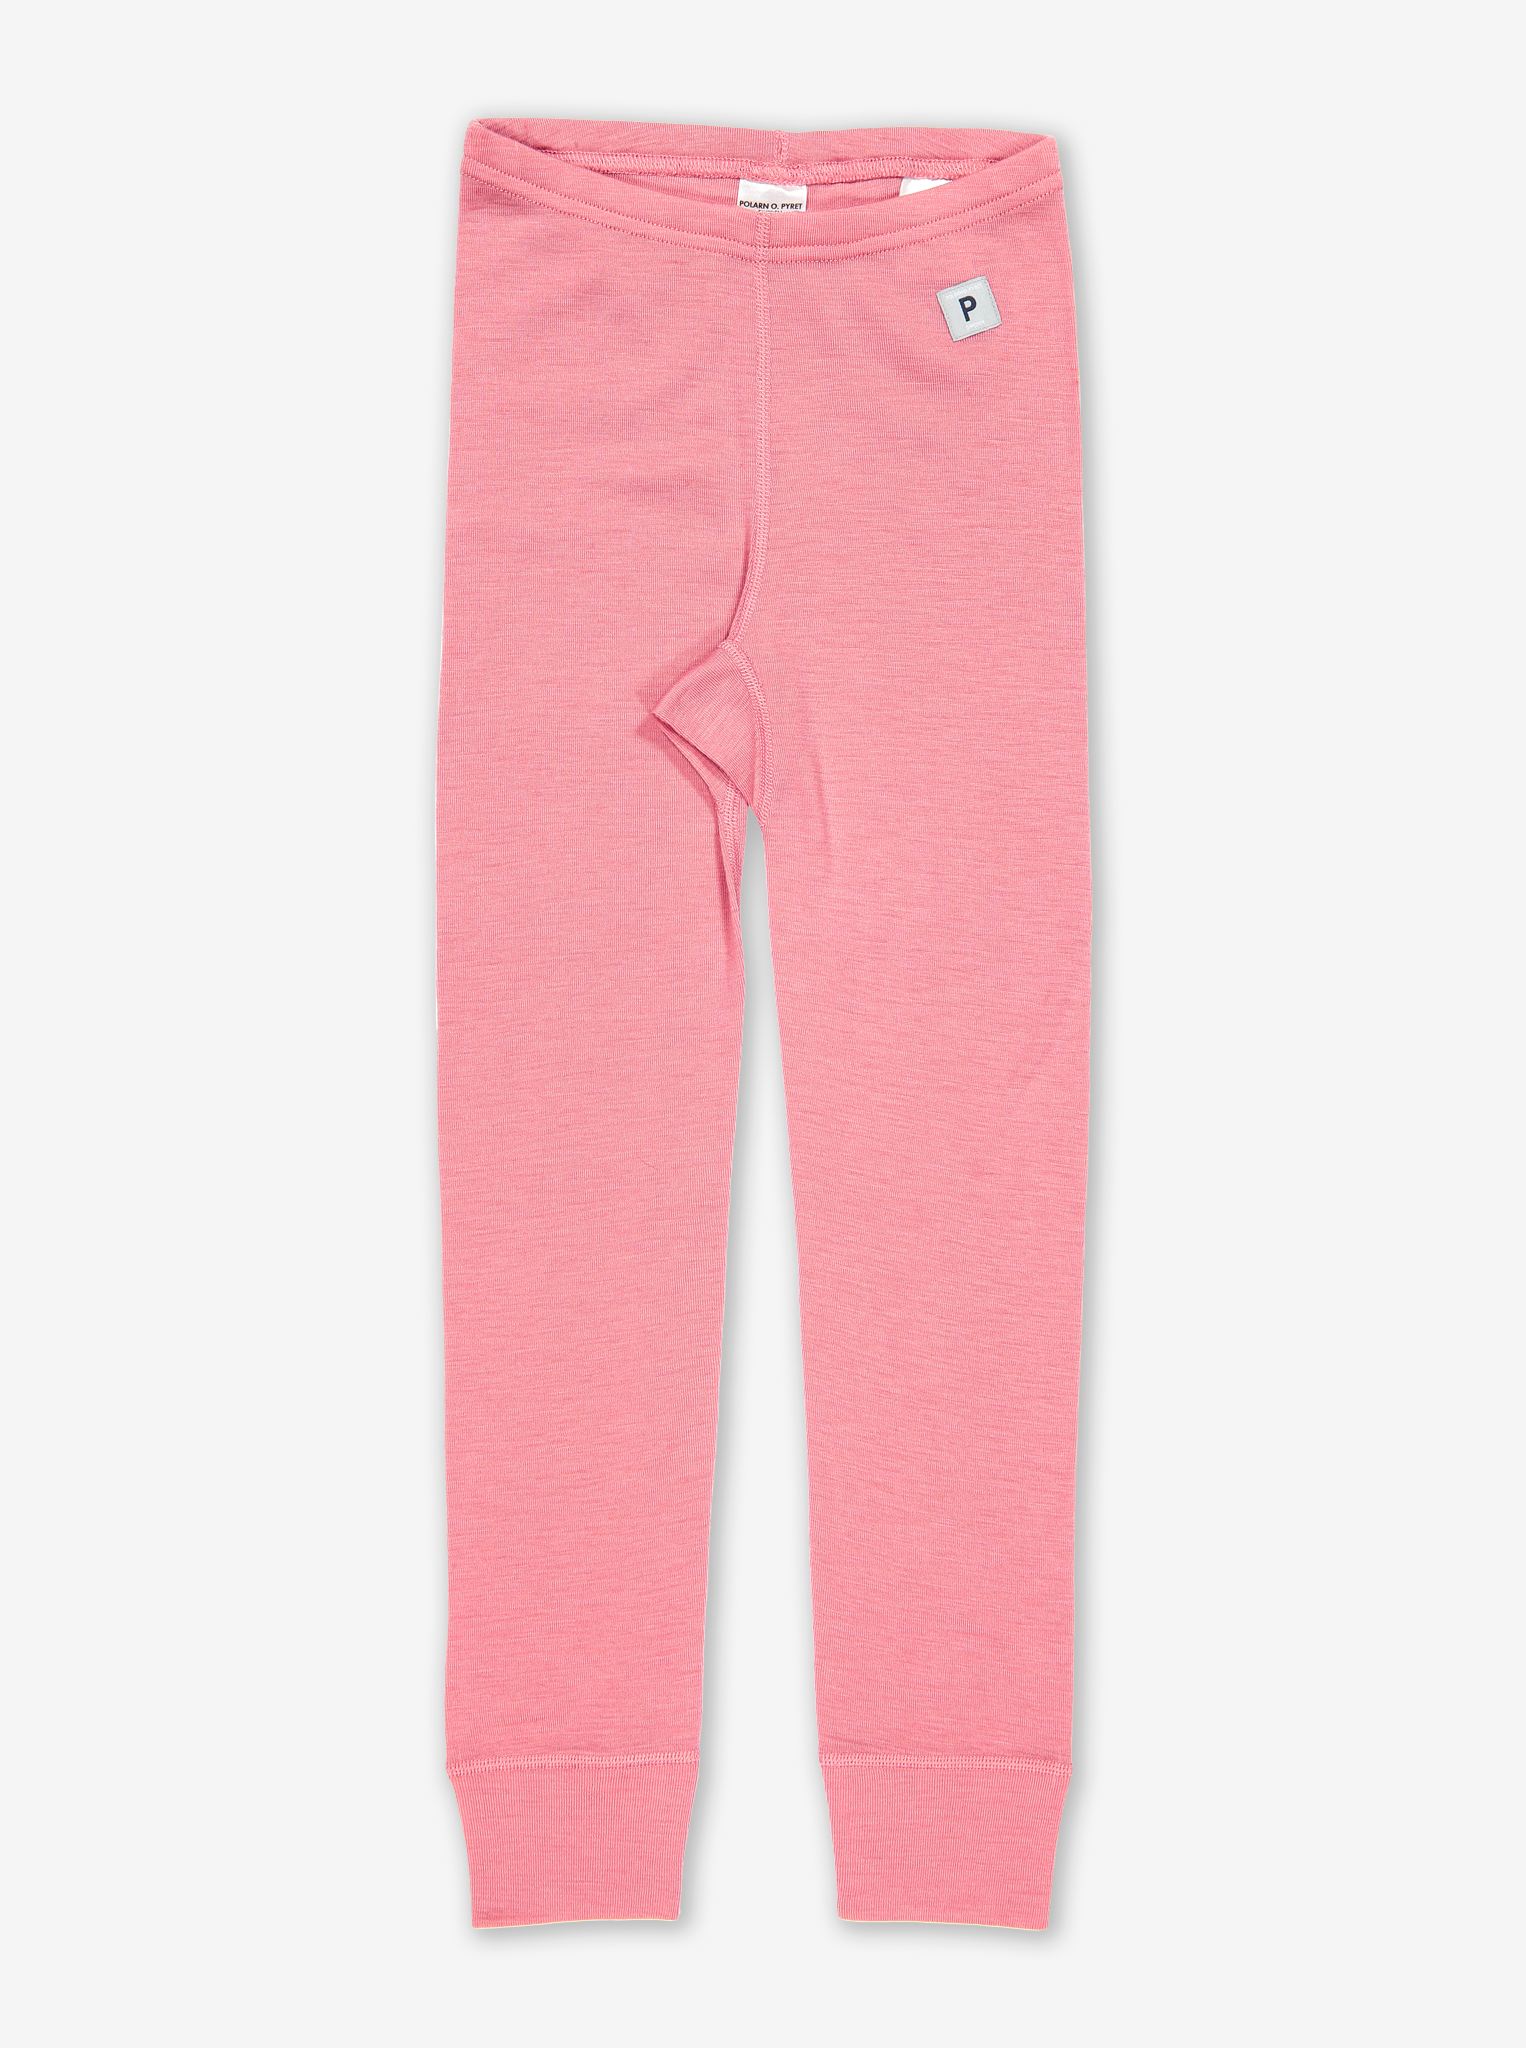 Long Johns Wool Solid School